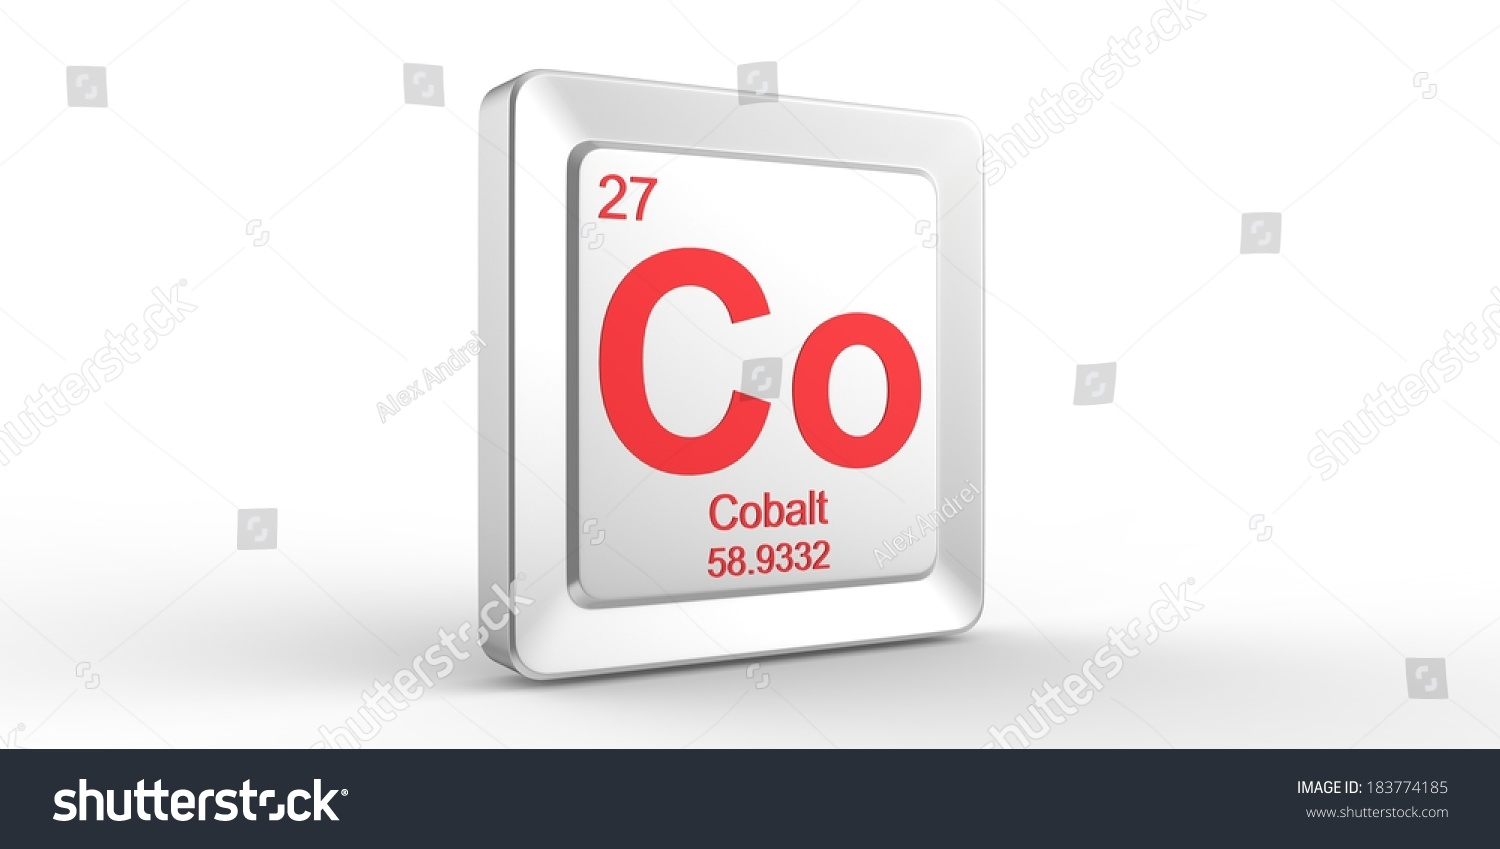 Cobalt periodic table facts images periodic table images cobalt periodic table facts gallery periodic table images cobalt periodic table facts images periodic table images gamestrikefo Choice Image